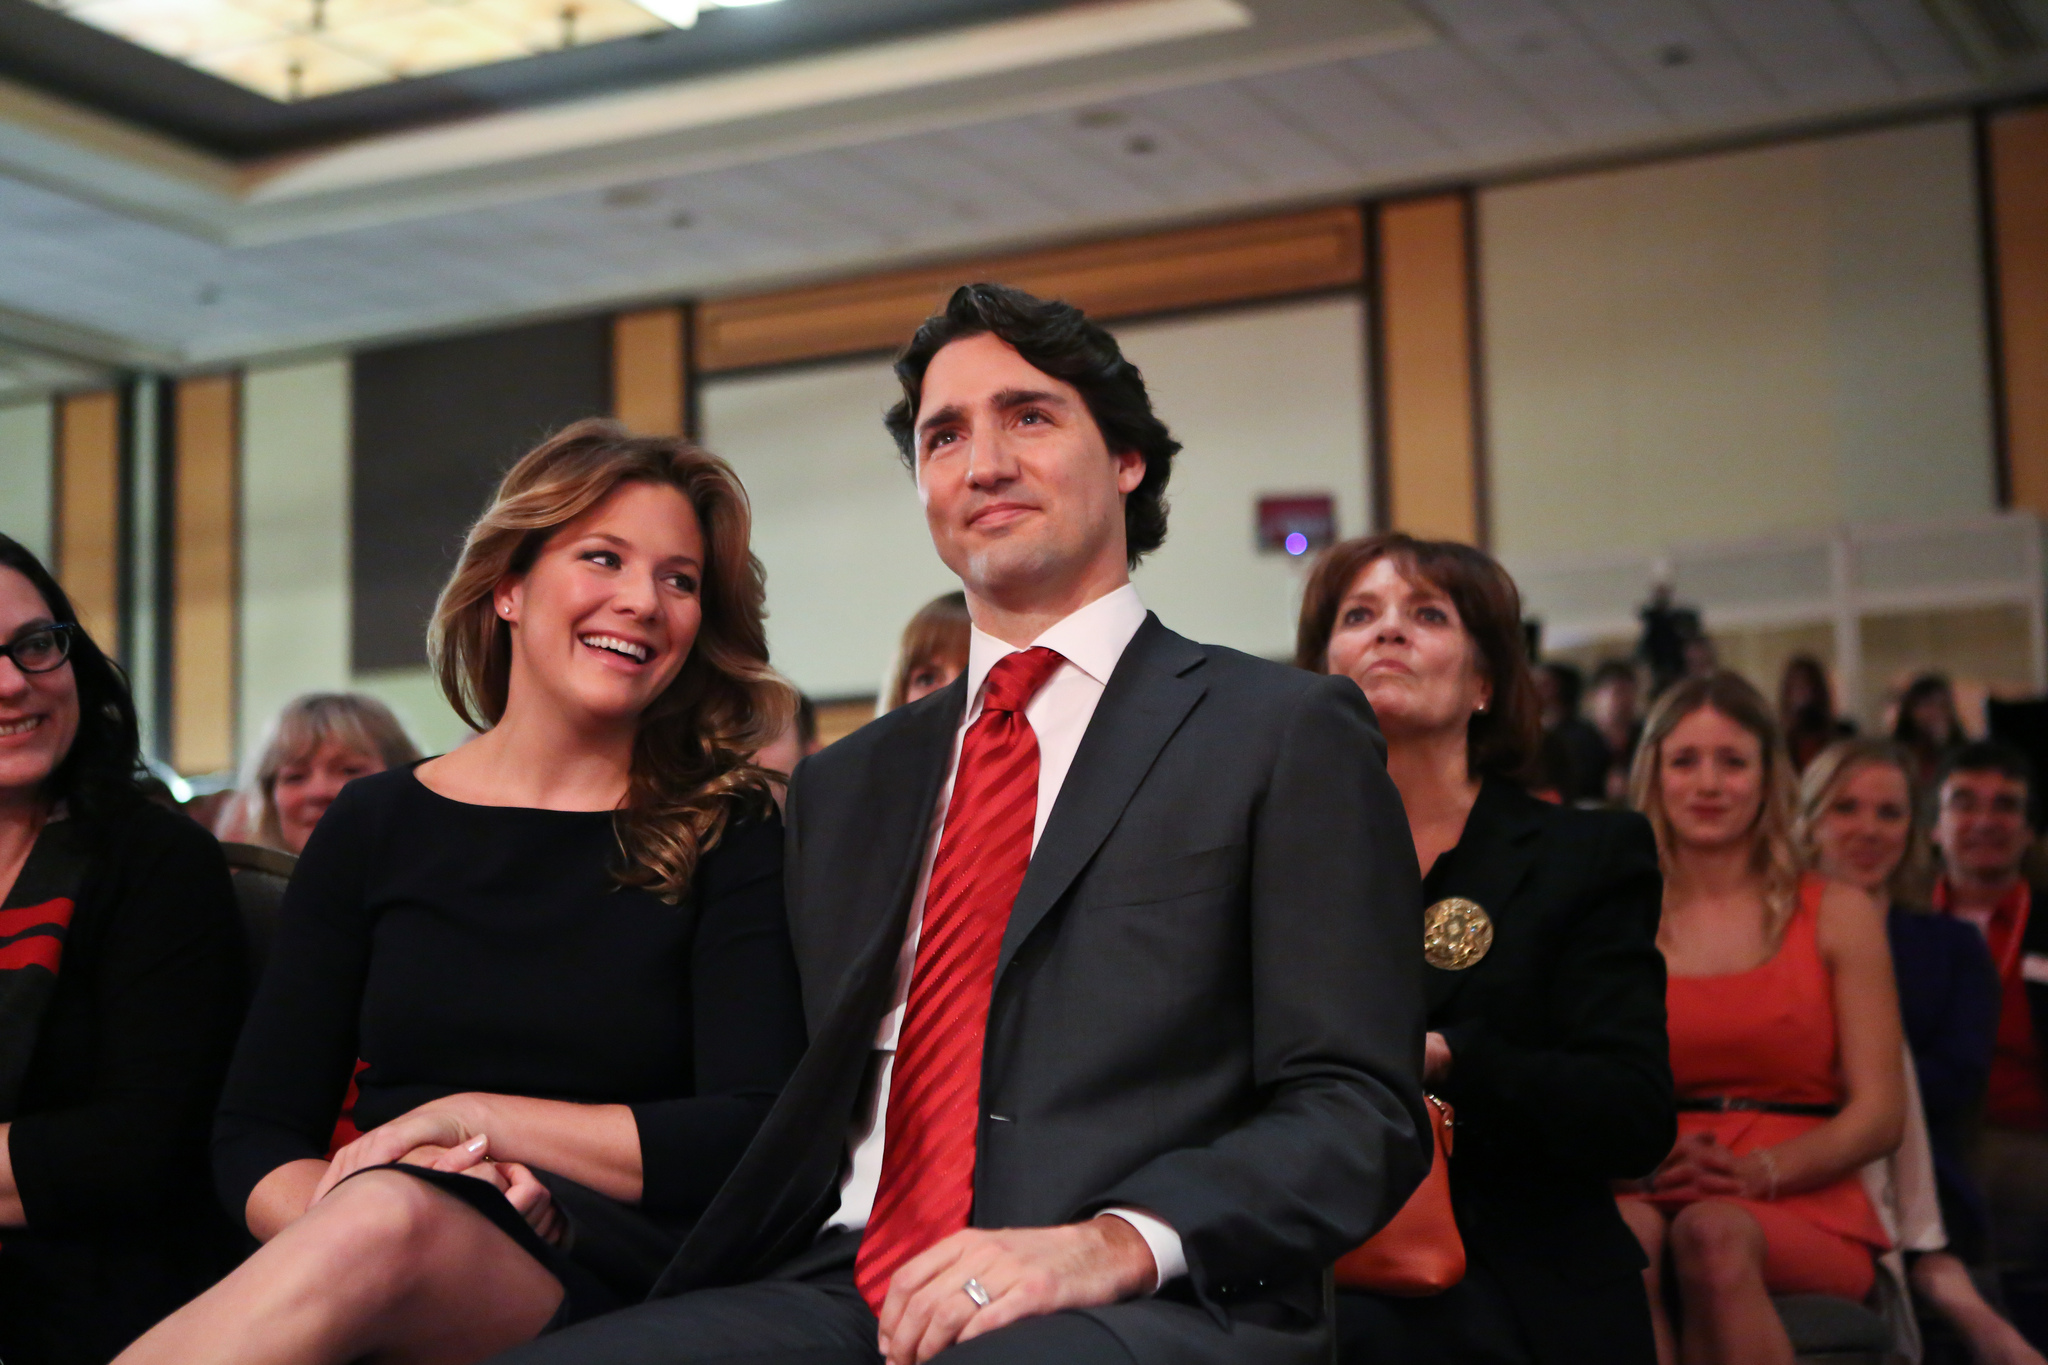 Canada's Progressives Bid Good Riddance to Harper